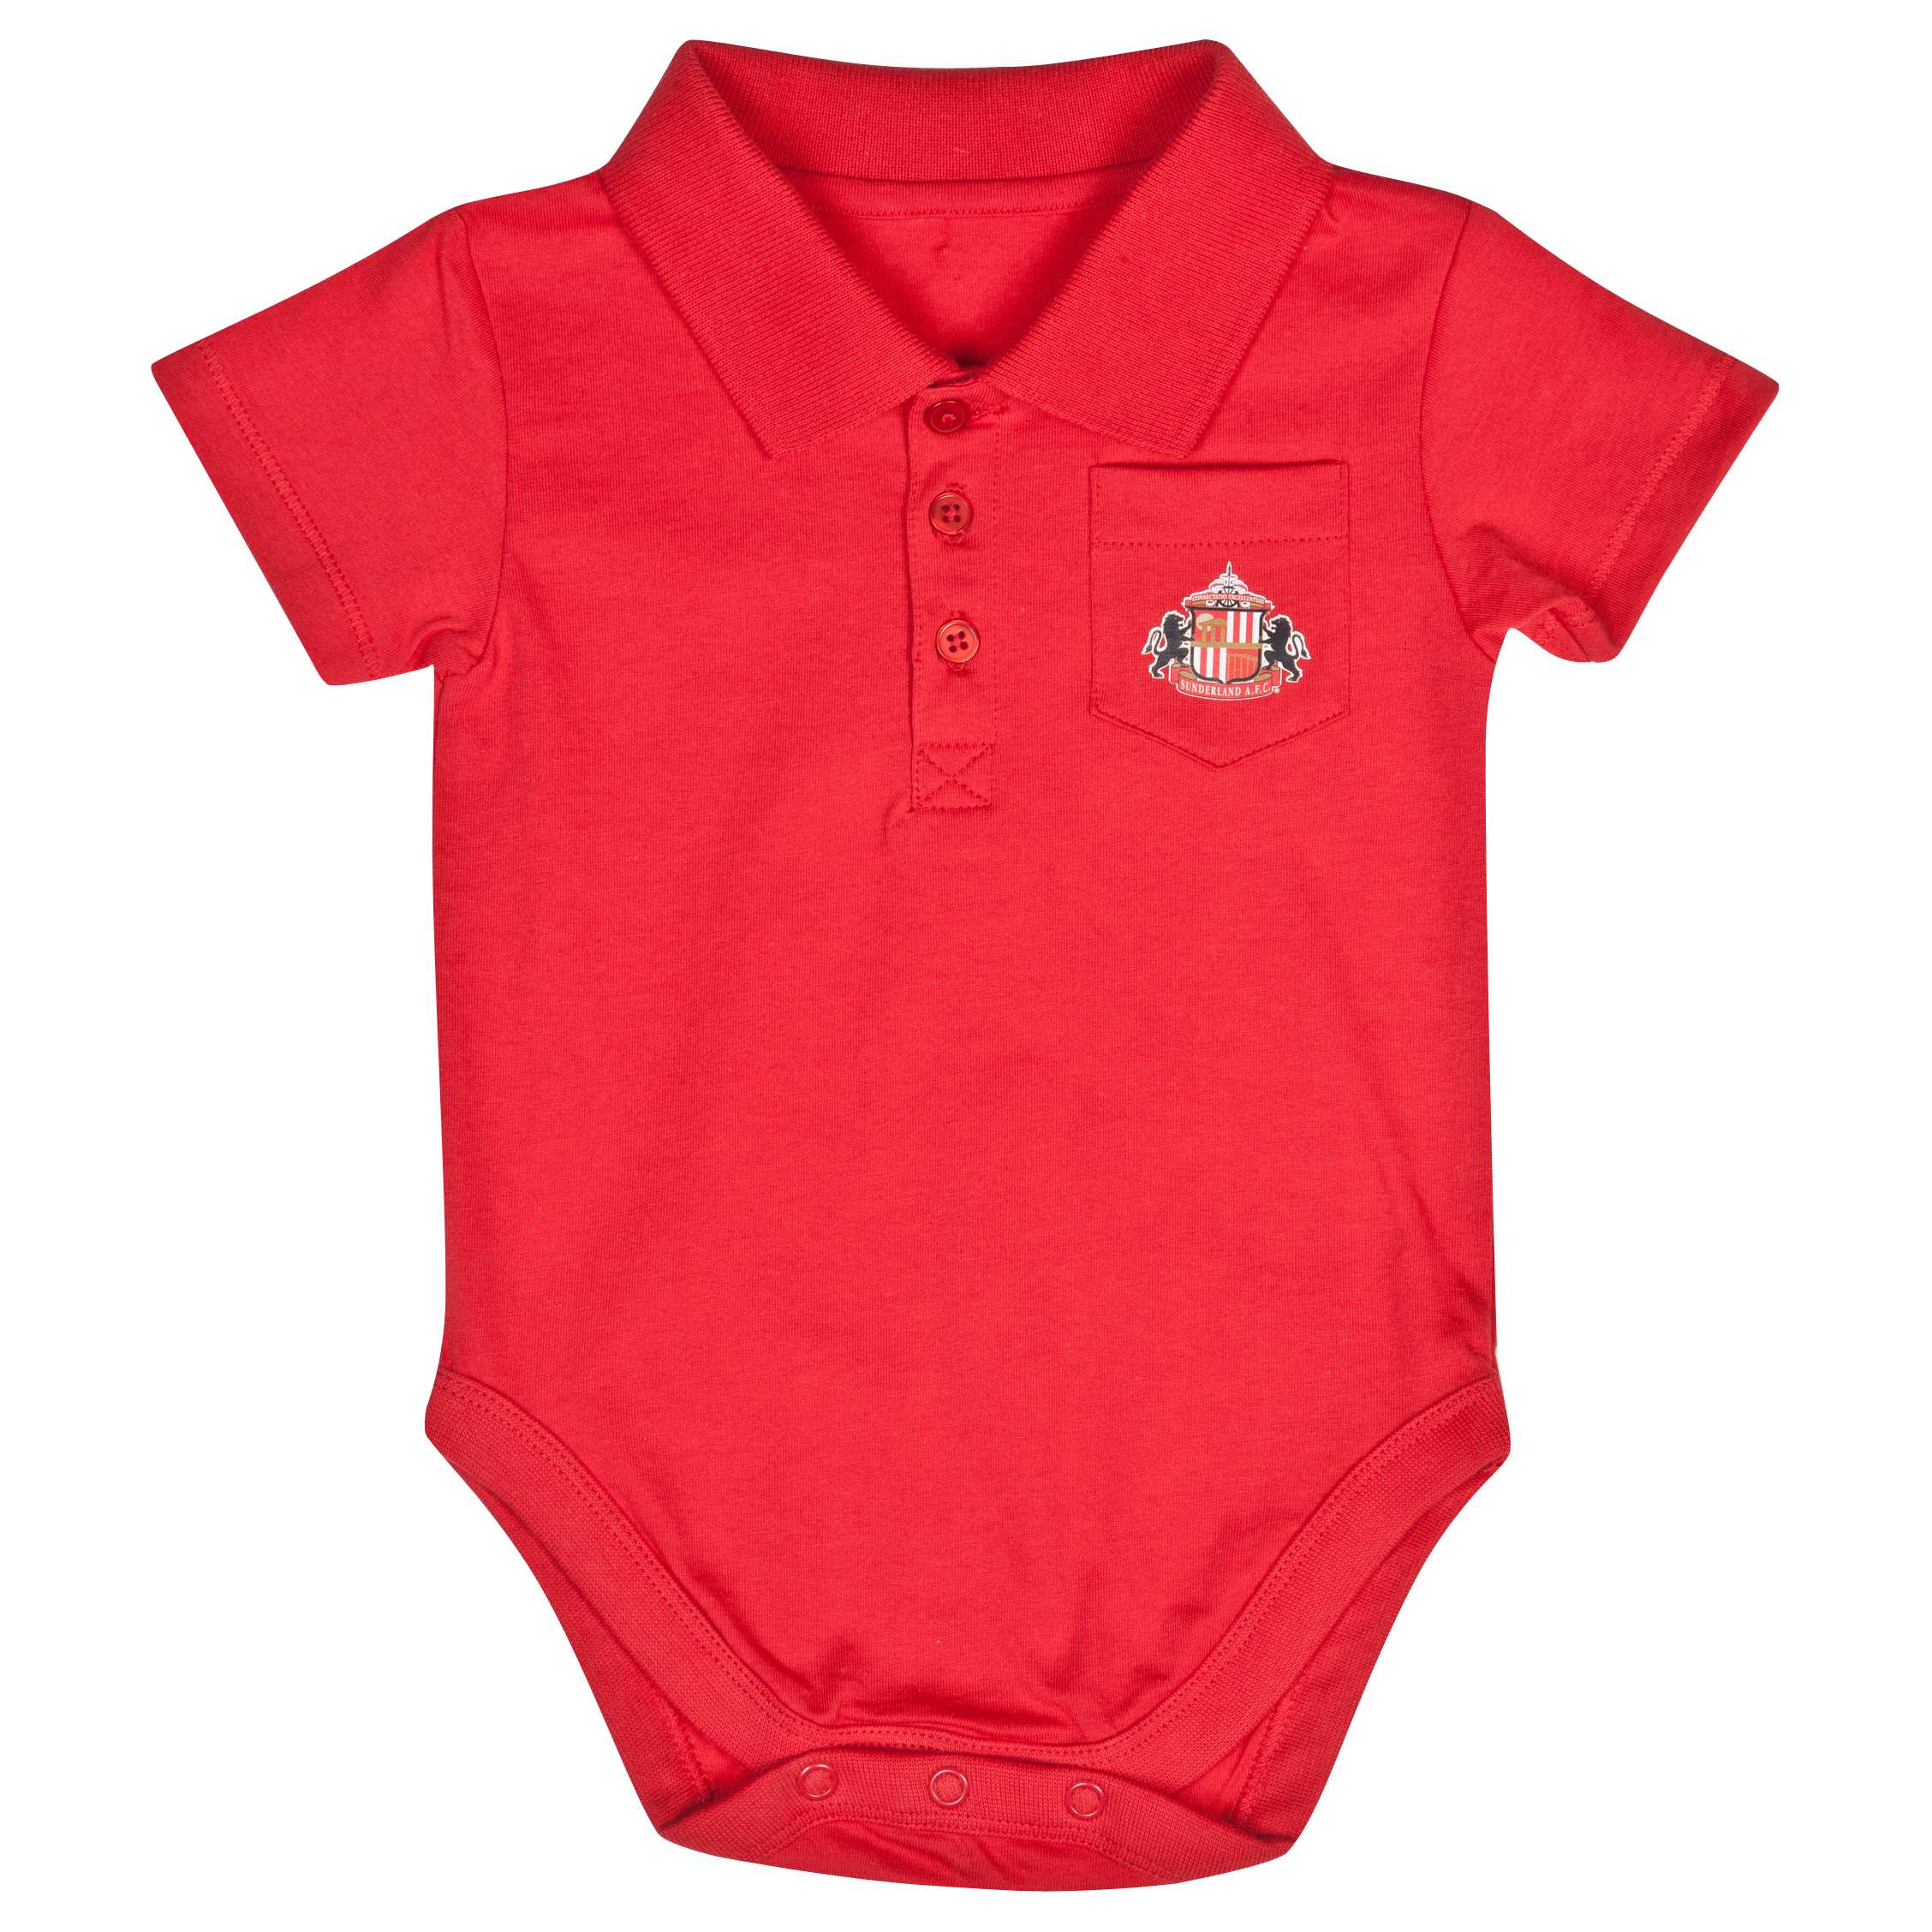 Sunderland Pocket Bodysuit - Red - Baby